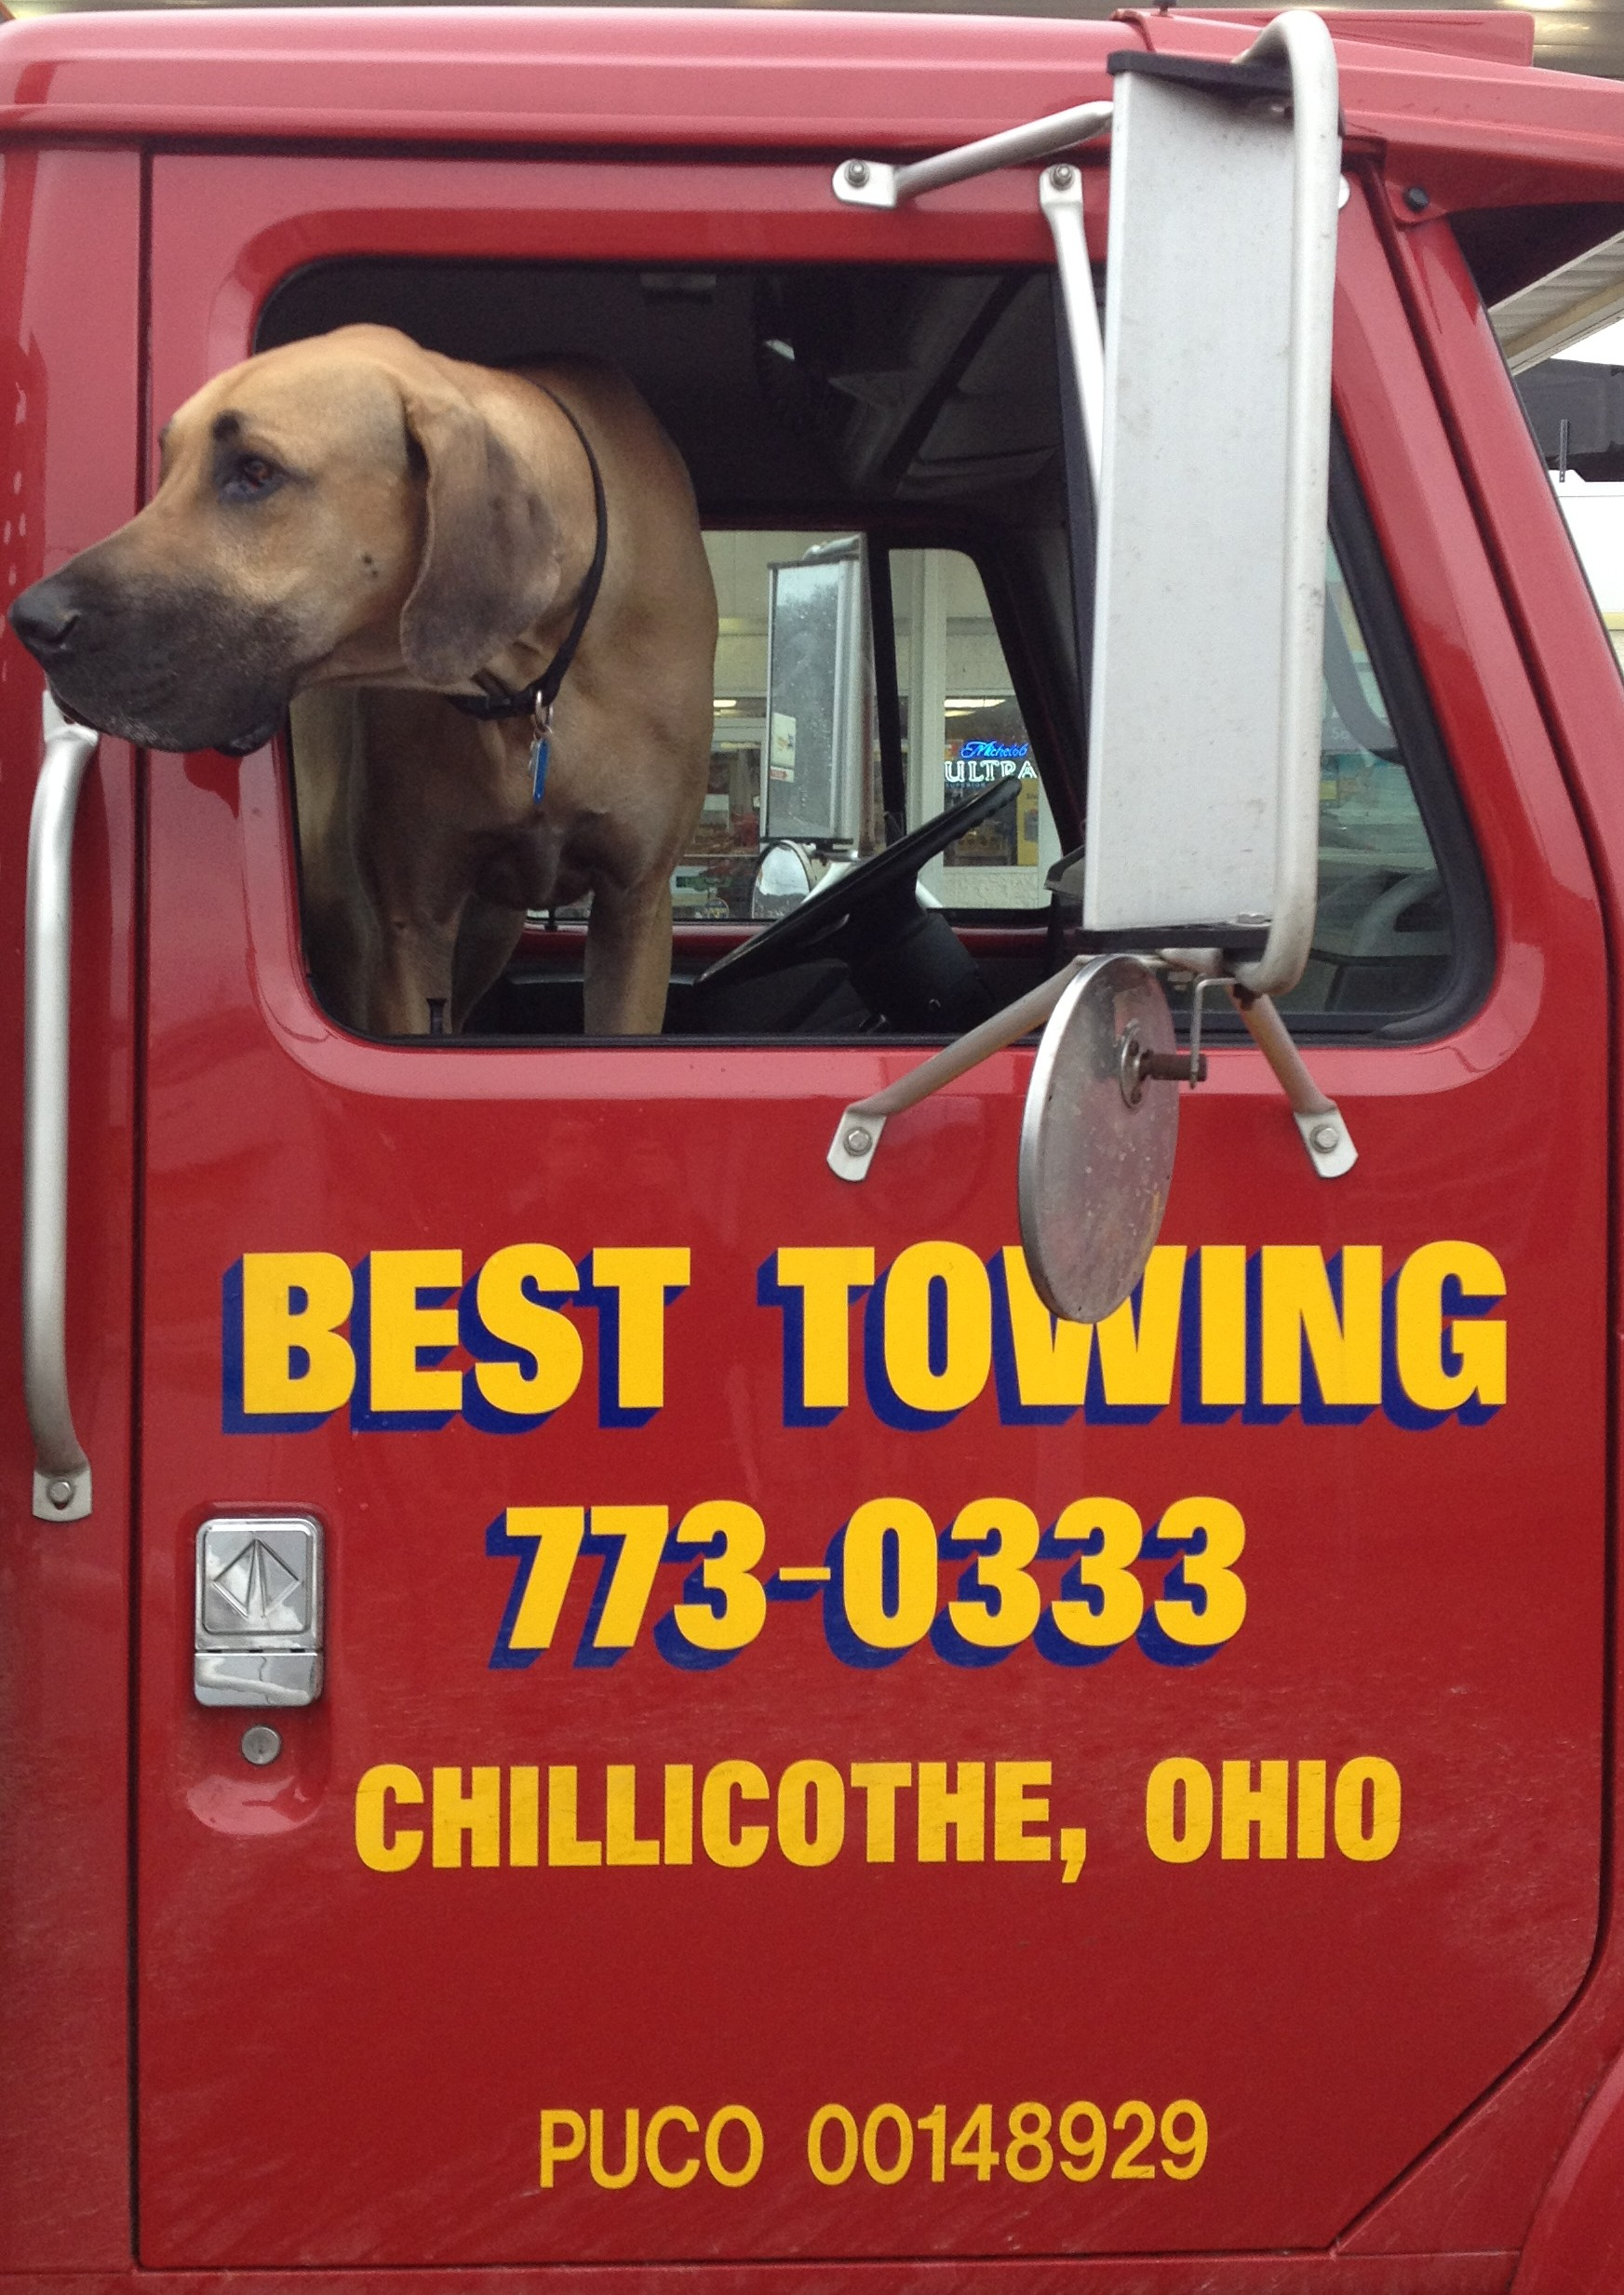 Best Towing, Chillicothe OH